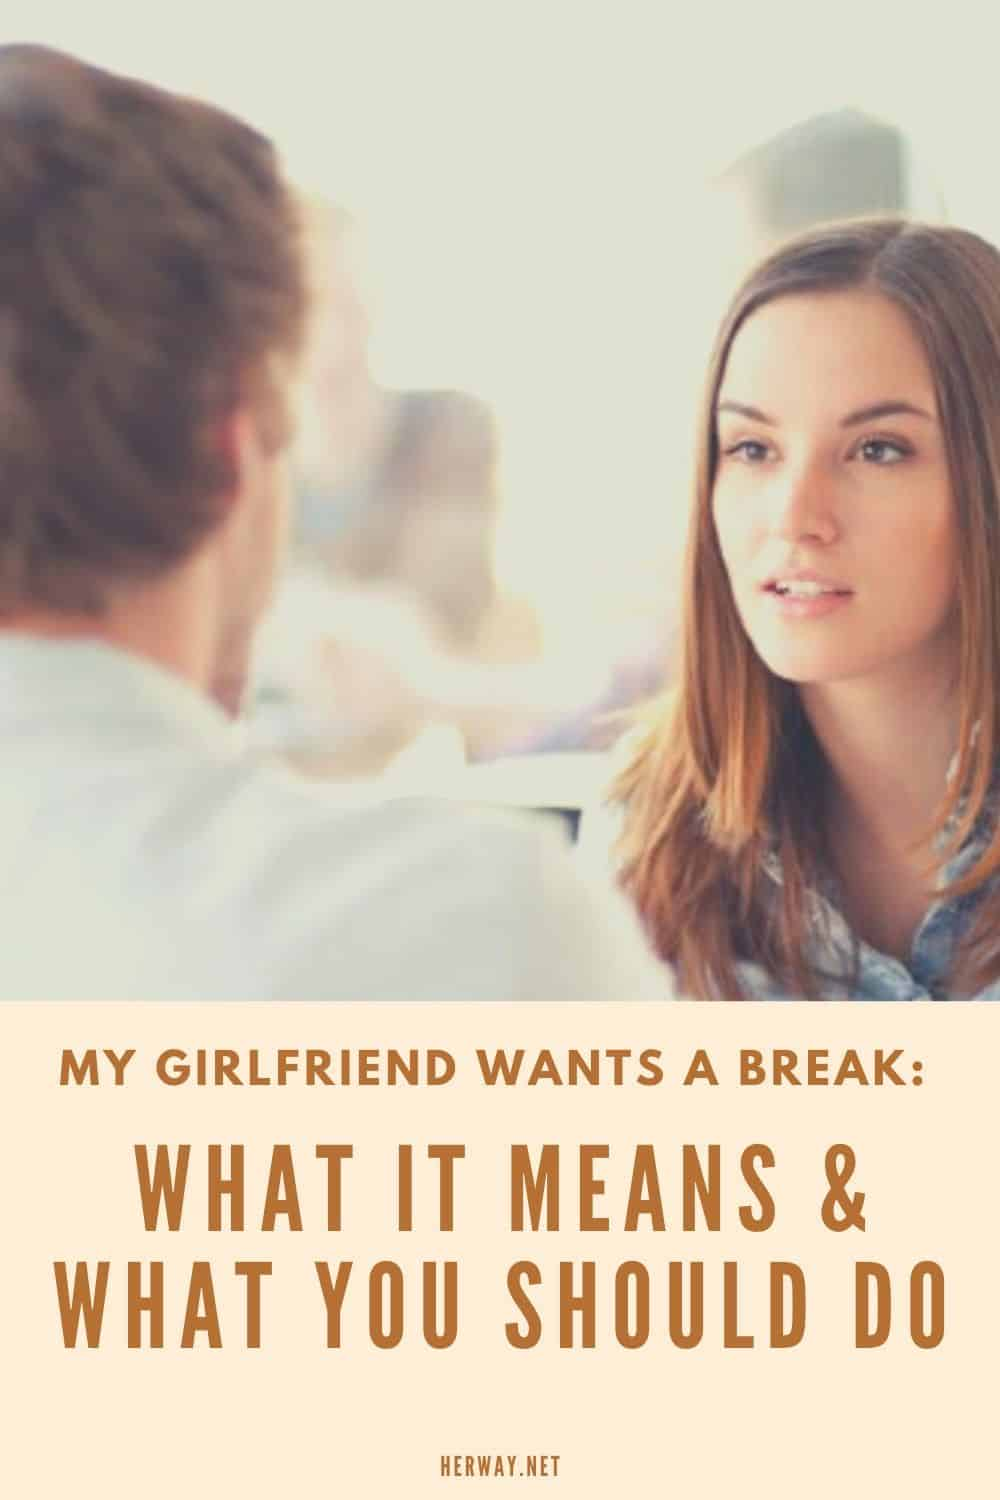 My Girlfriend Wants A Break: What It Means & What You Should Do pinterest